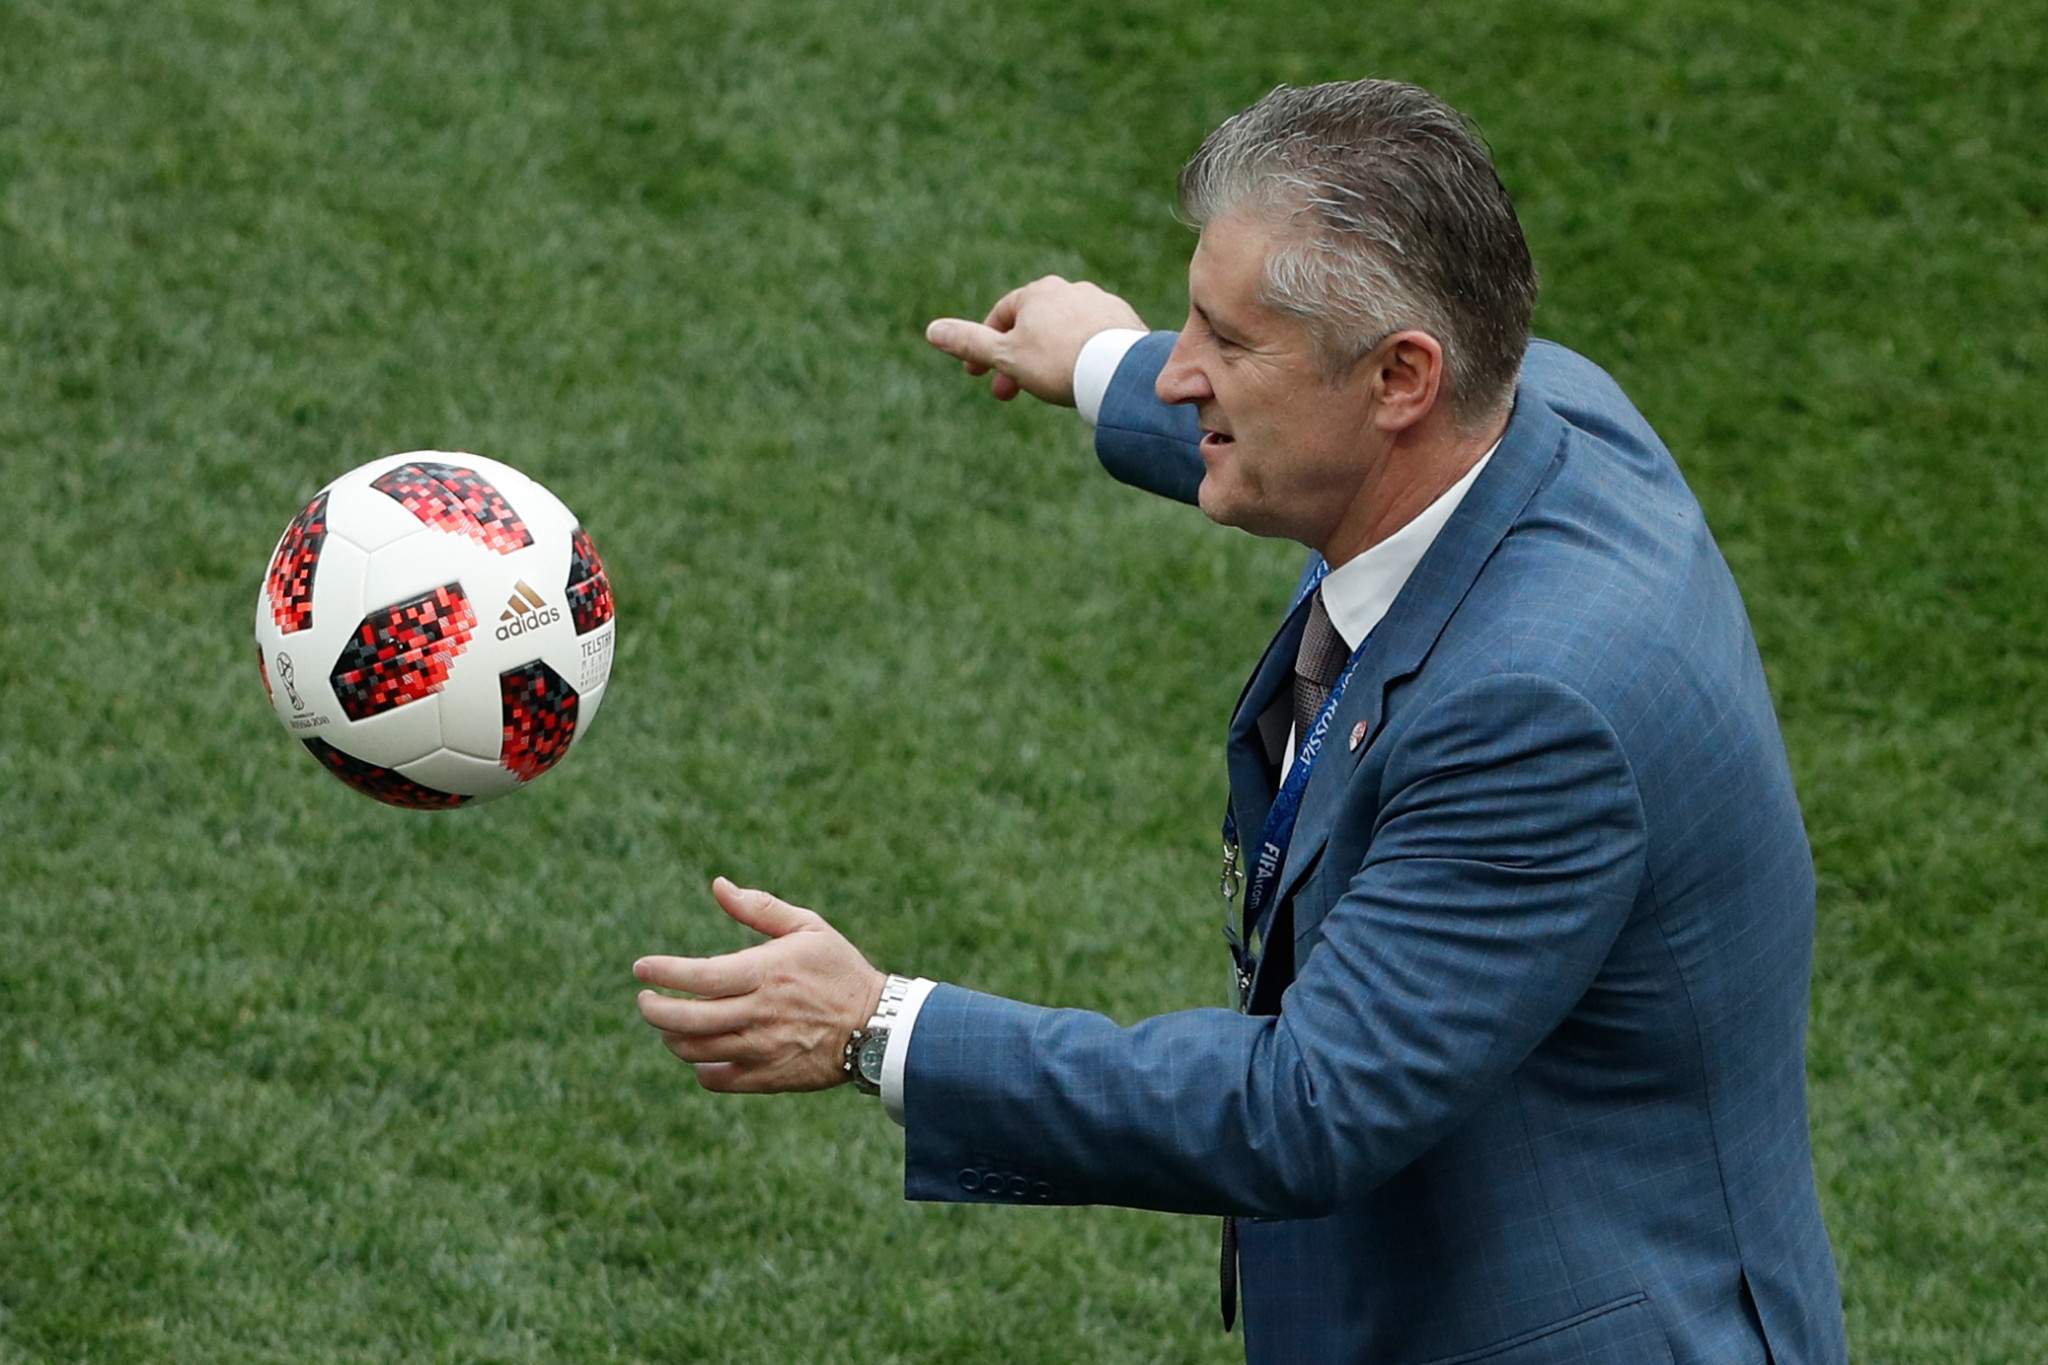 Croatian Football Federation President Davor Suker reportedly expressed support to holding friendly matches with Iran ©Getty Images